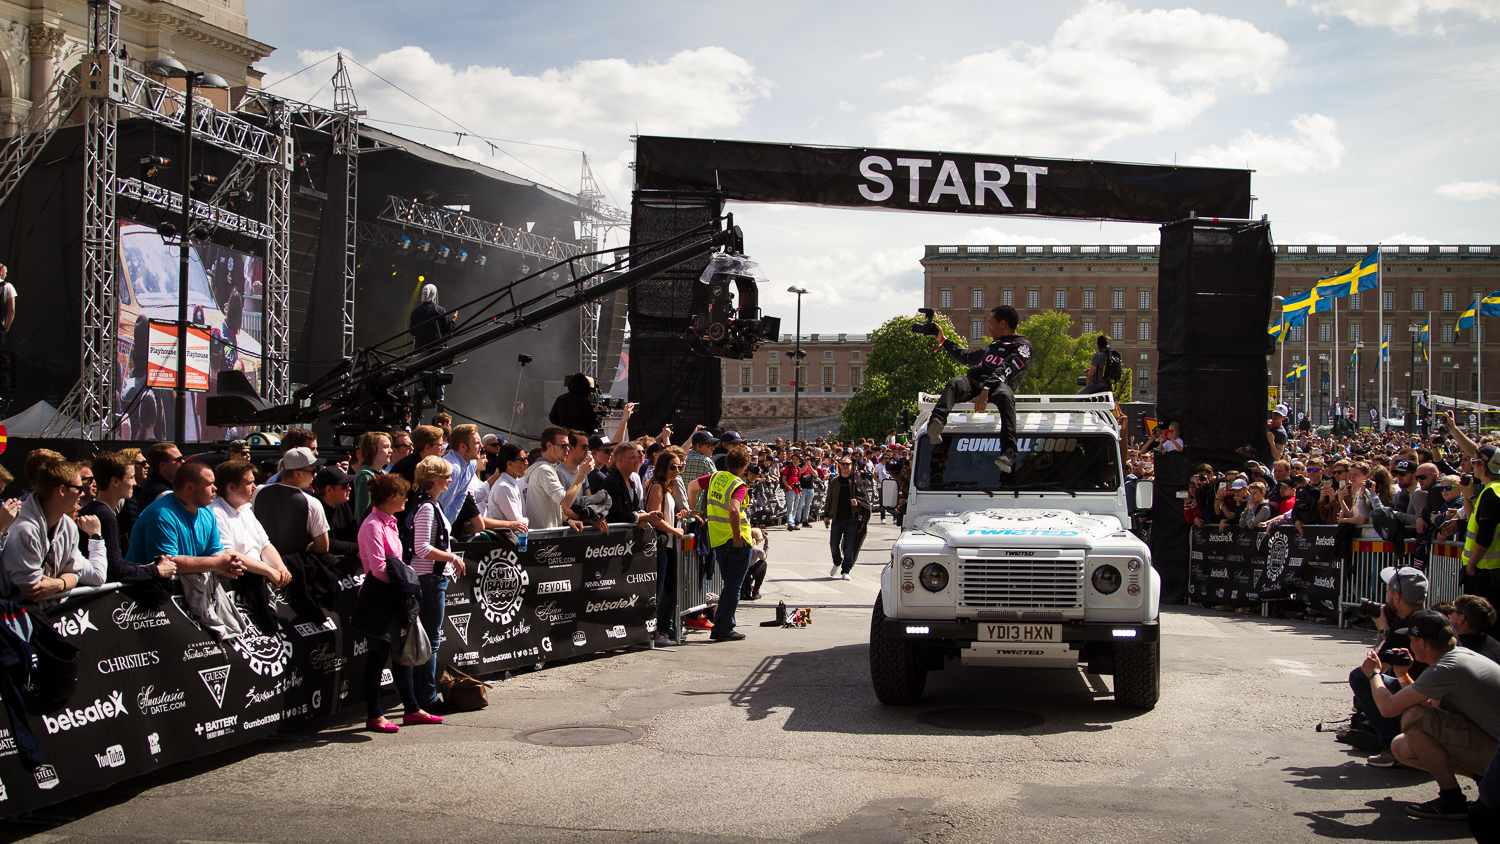 SMoores_15-05-24_Gumball 3000 Day 1_0686-Edit.jpg